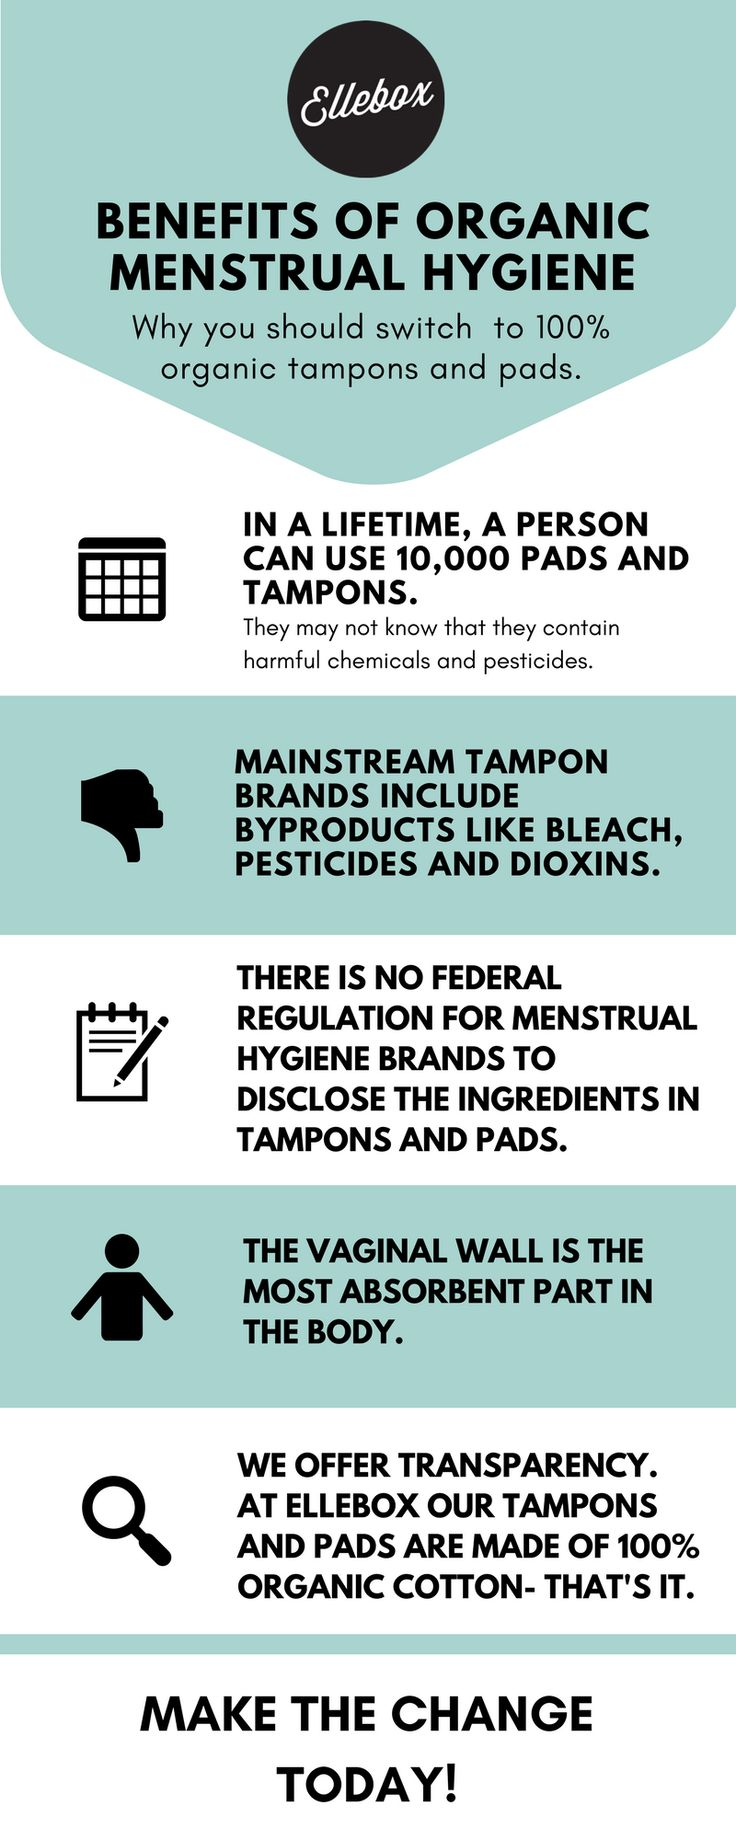 Women use a lot of tampons in their lifetime, 10,000 to be exact. So shouldn't we treat our body right? Mainstream tampon brands can include ingredients like bleach, pesticides and dioxins and the FDA isn't required to disclose what's in their tampons and pads. At Ellebox, our tampons and pads are 100% organic cotton. ONLY 1 ingredient.  You deserve the best!